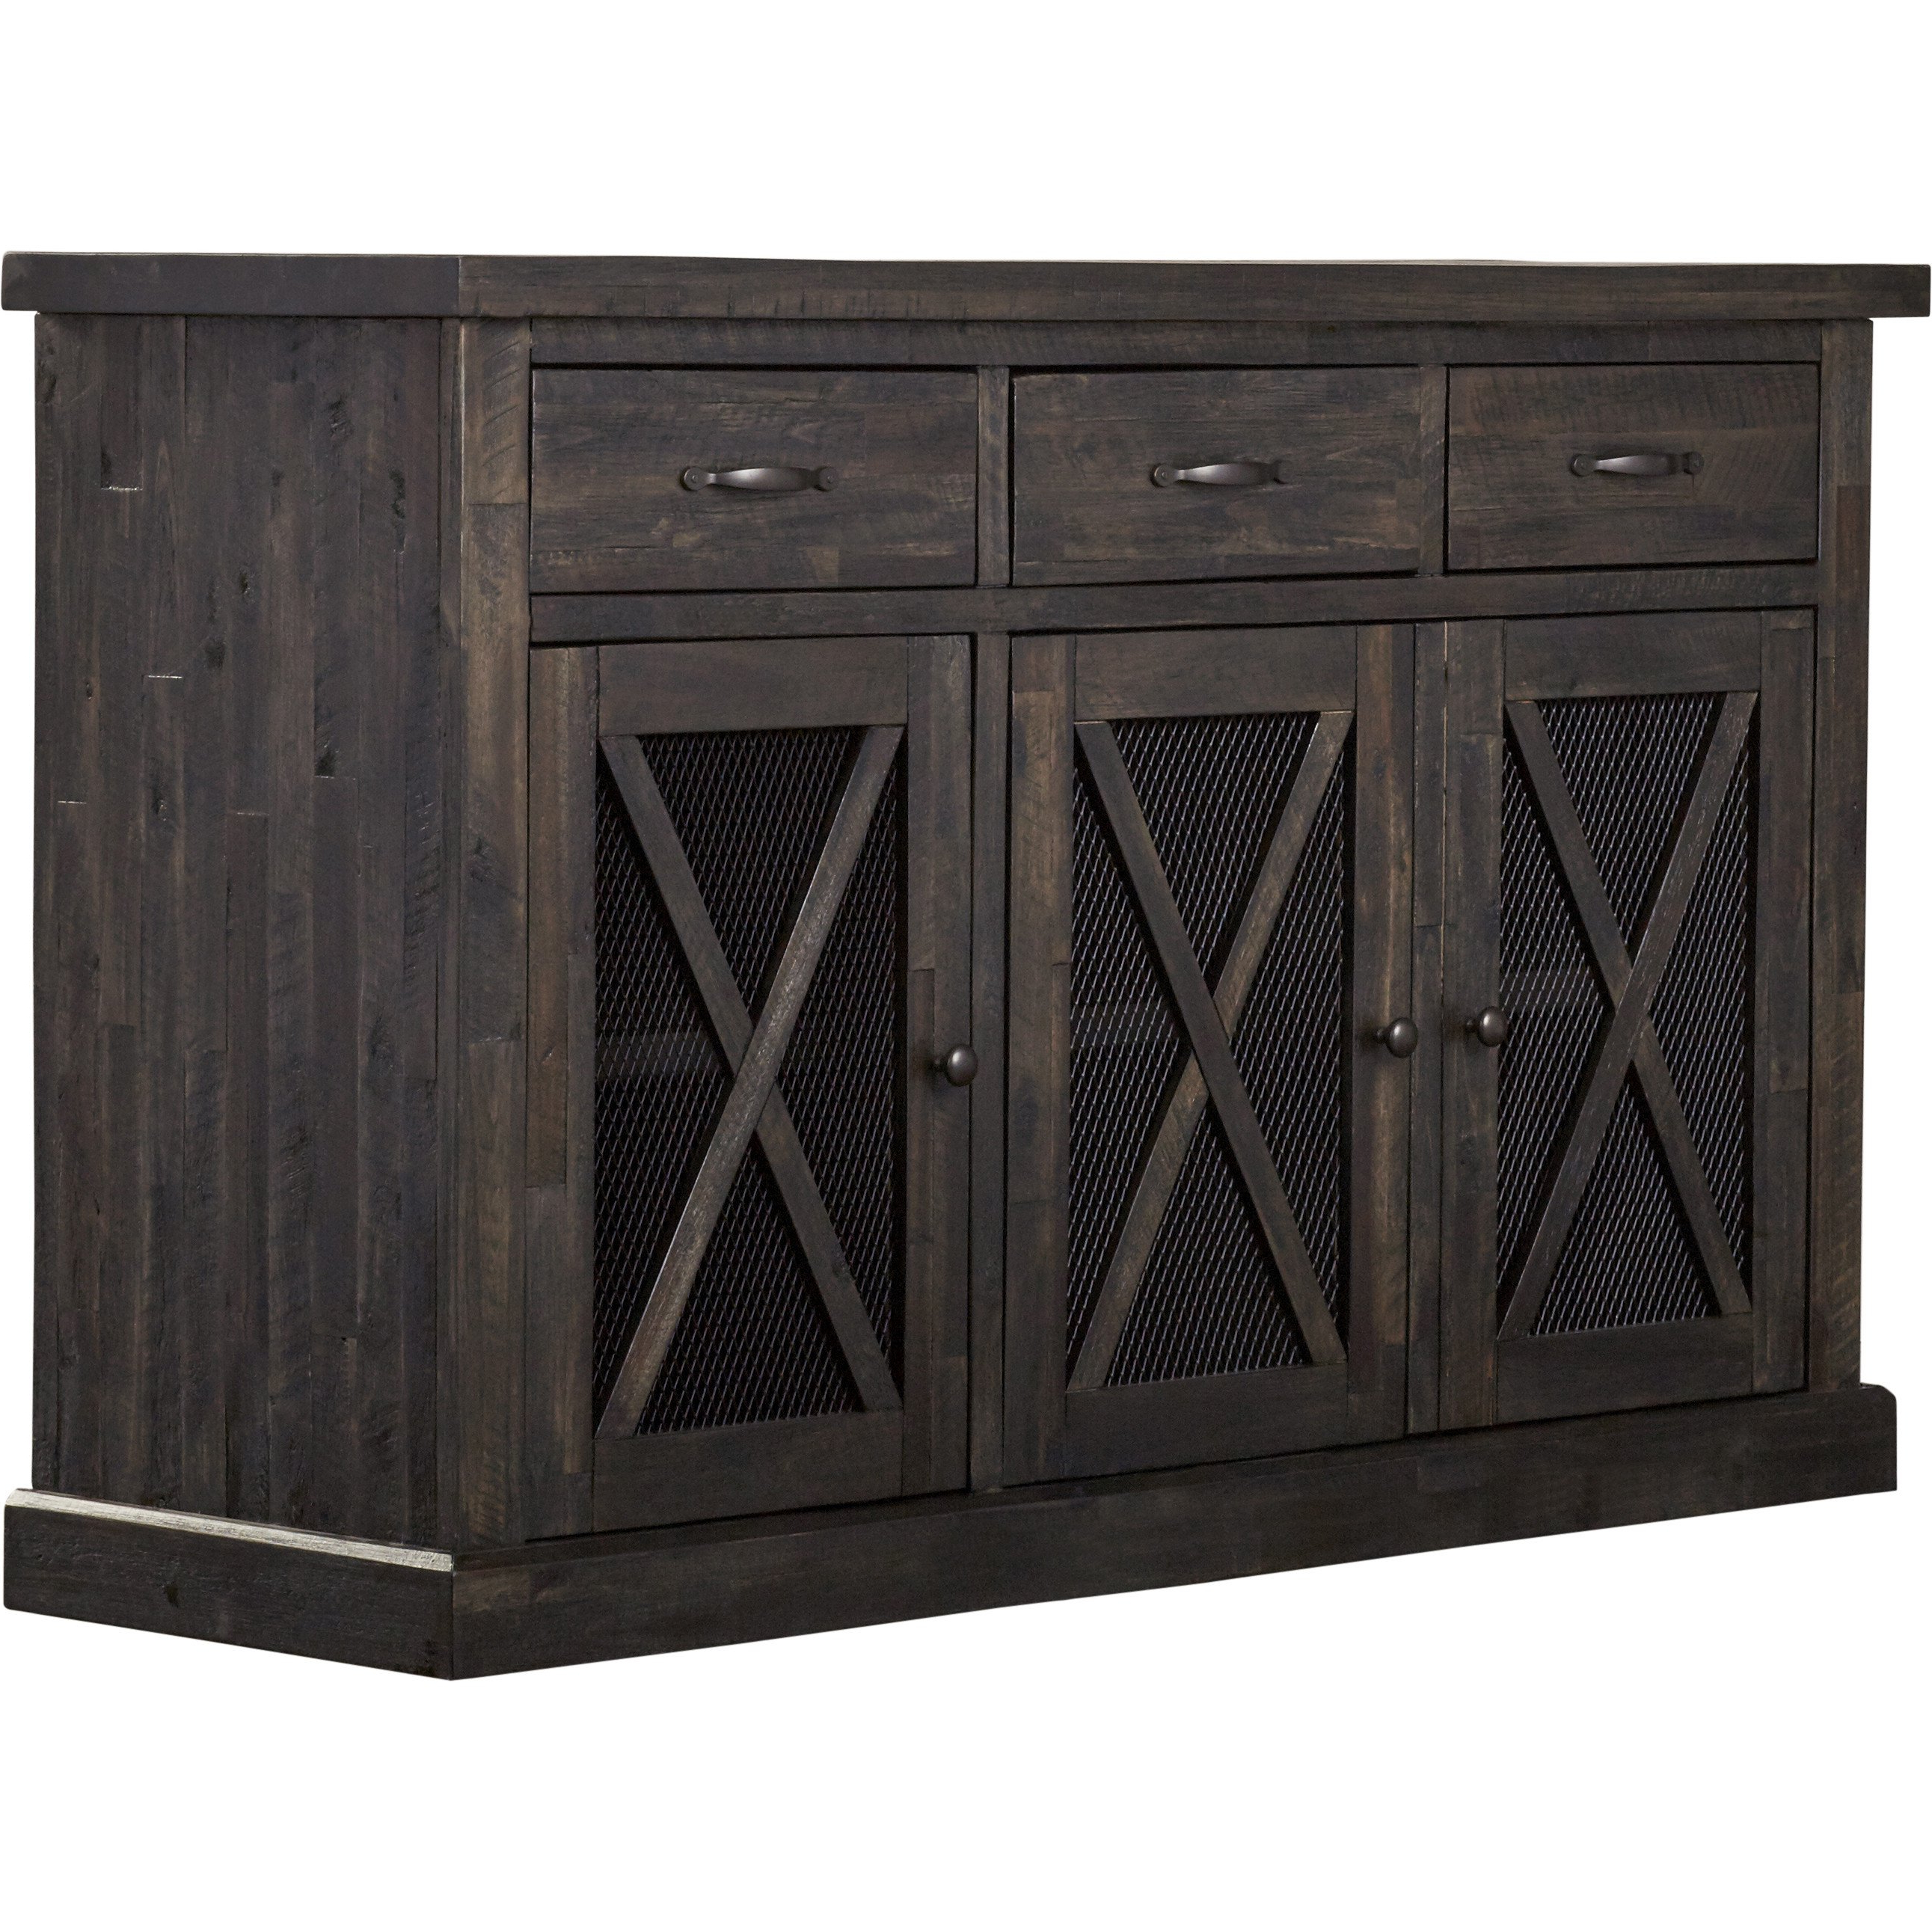 Loon Peak Todd Creek Sideboard Reviews Wayfair Sideboard Pertaining To Seiling Sideboards (View 14 of 20)